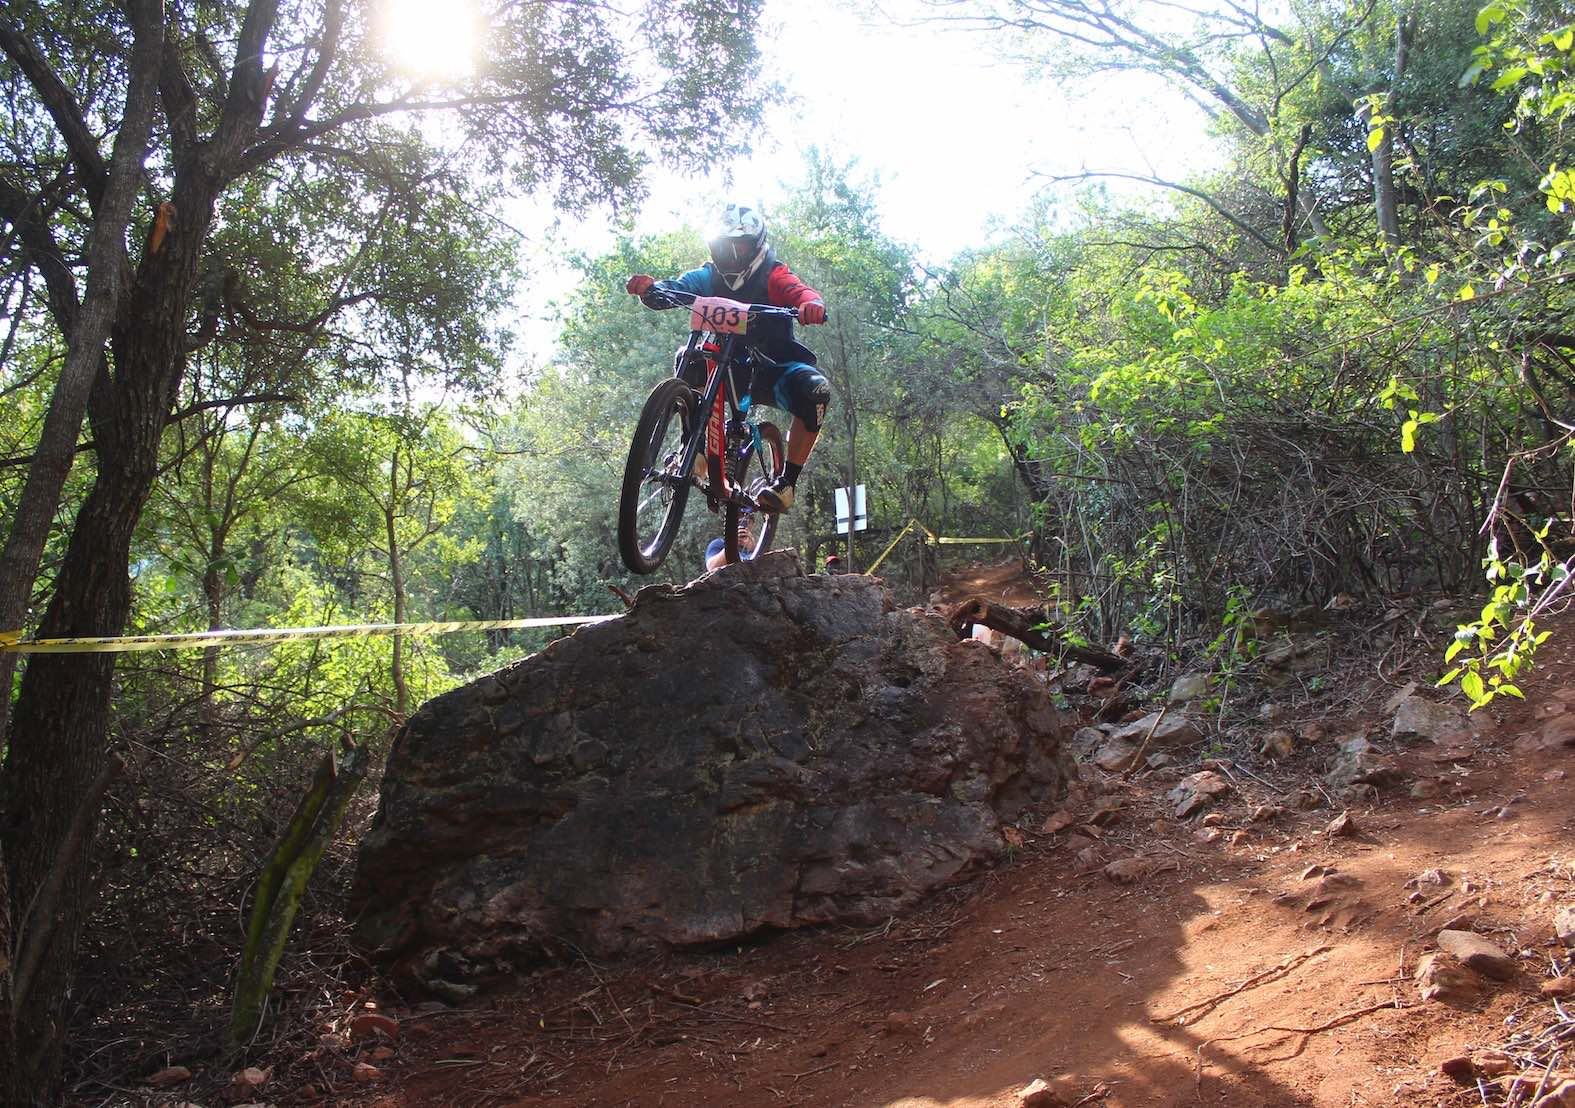 Race report from the 2018 SA Downhill MTB Championships